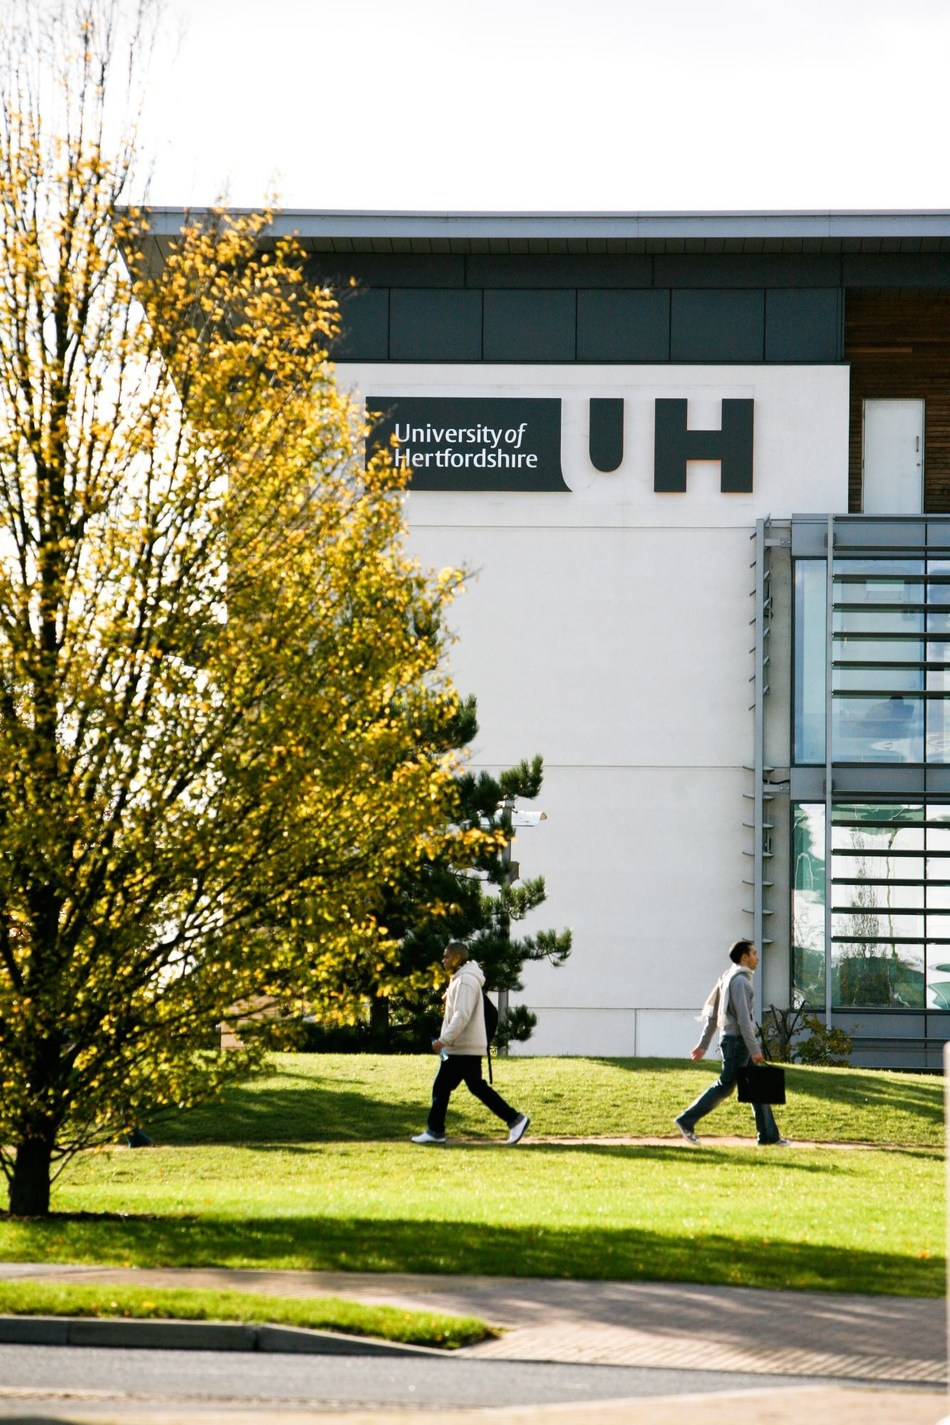 University of Hertfordshire (PRNewsfoto/University of Hertfordshire)